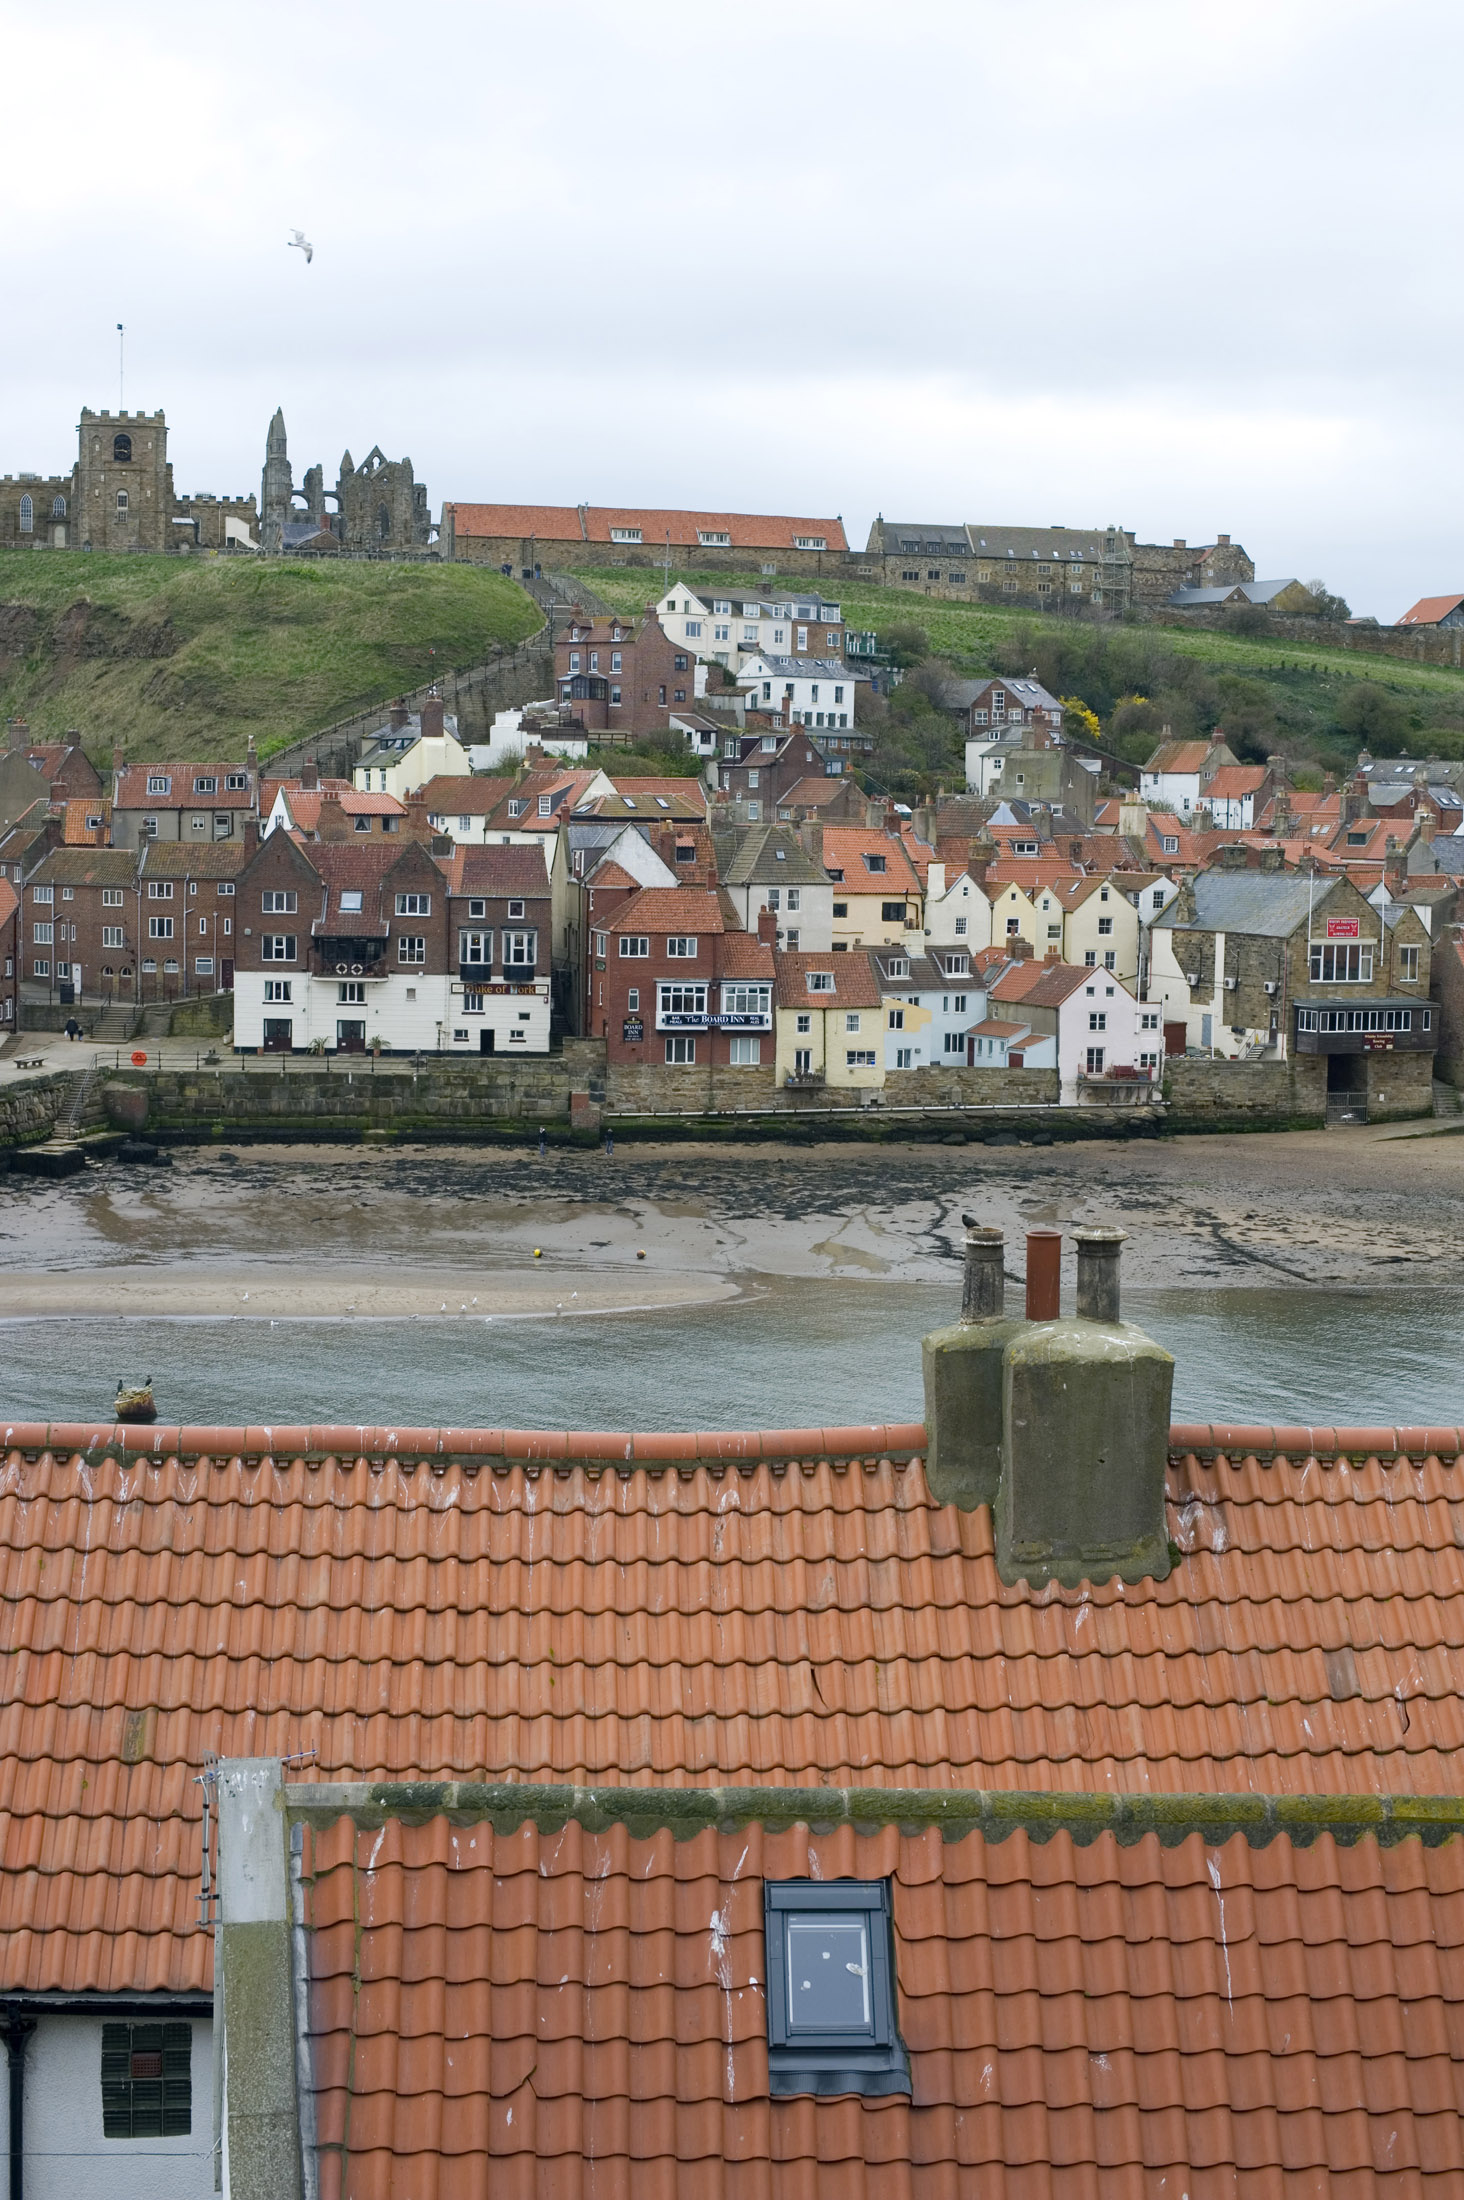 looking over tiled cottage roof tops to the lower harbour and rows of cottages with the abbey and church on the hill